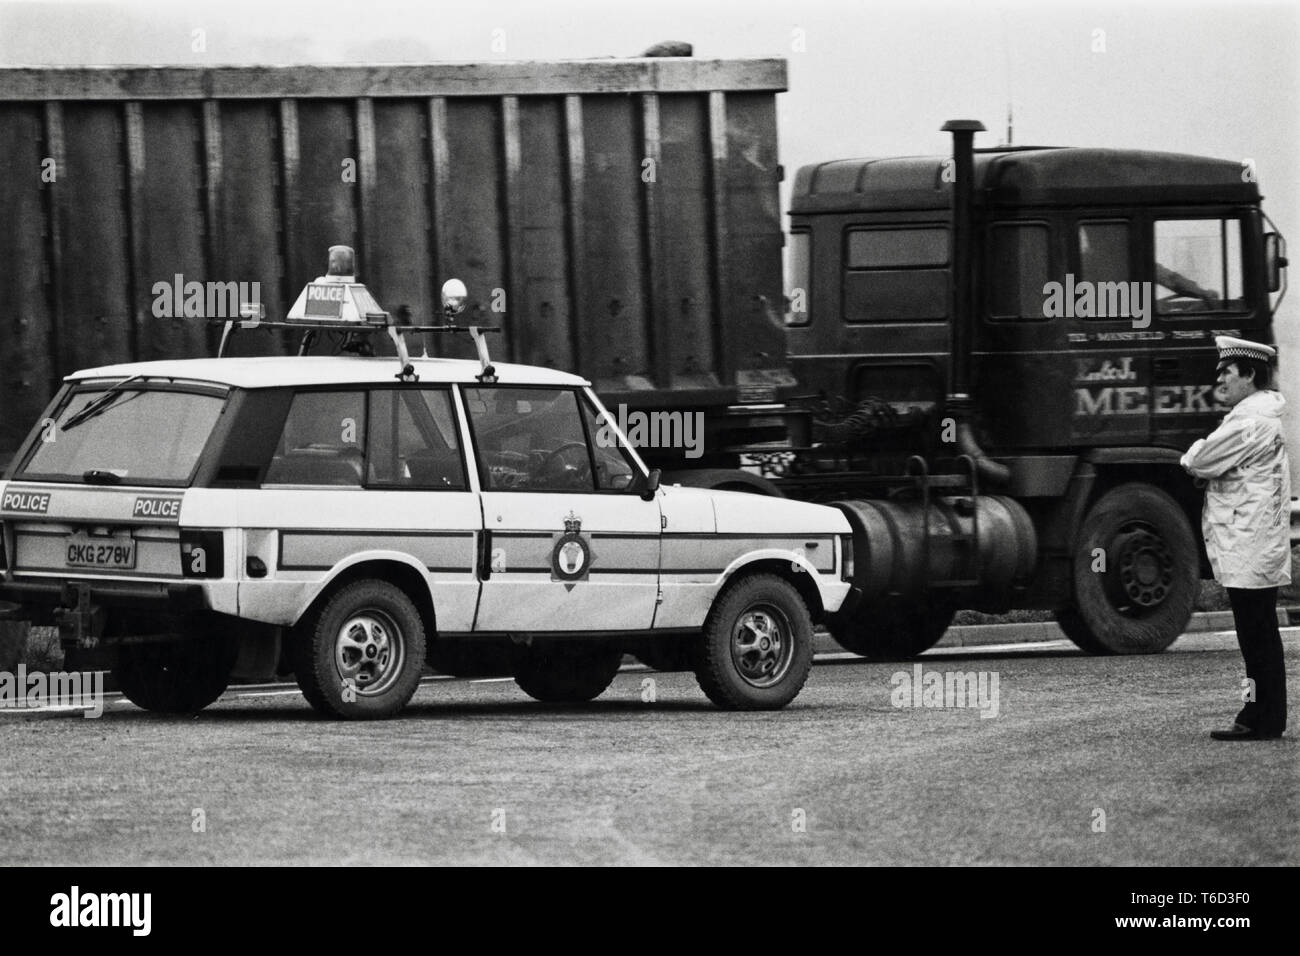 Police block roundabout during 1984 miners strike at Magor Services to allow convoy of lorries through carrying coal & coke bound for Llanwern steelworks Newport South Wales UK - Stock Image